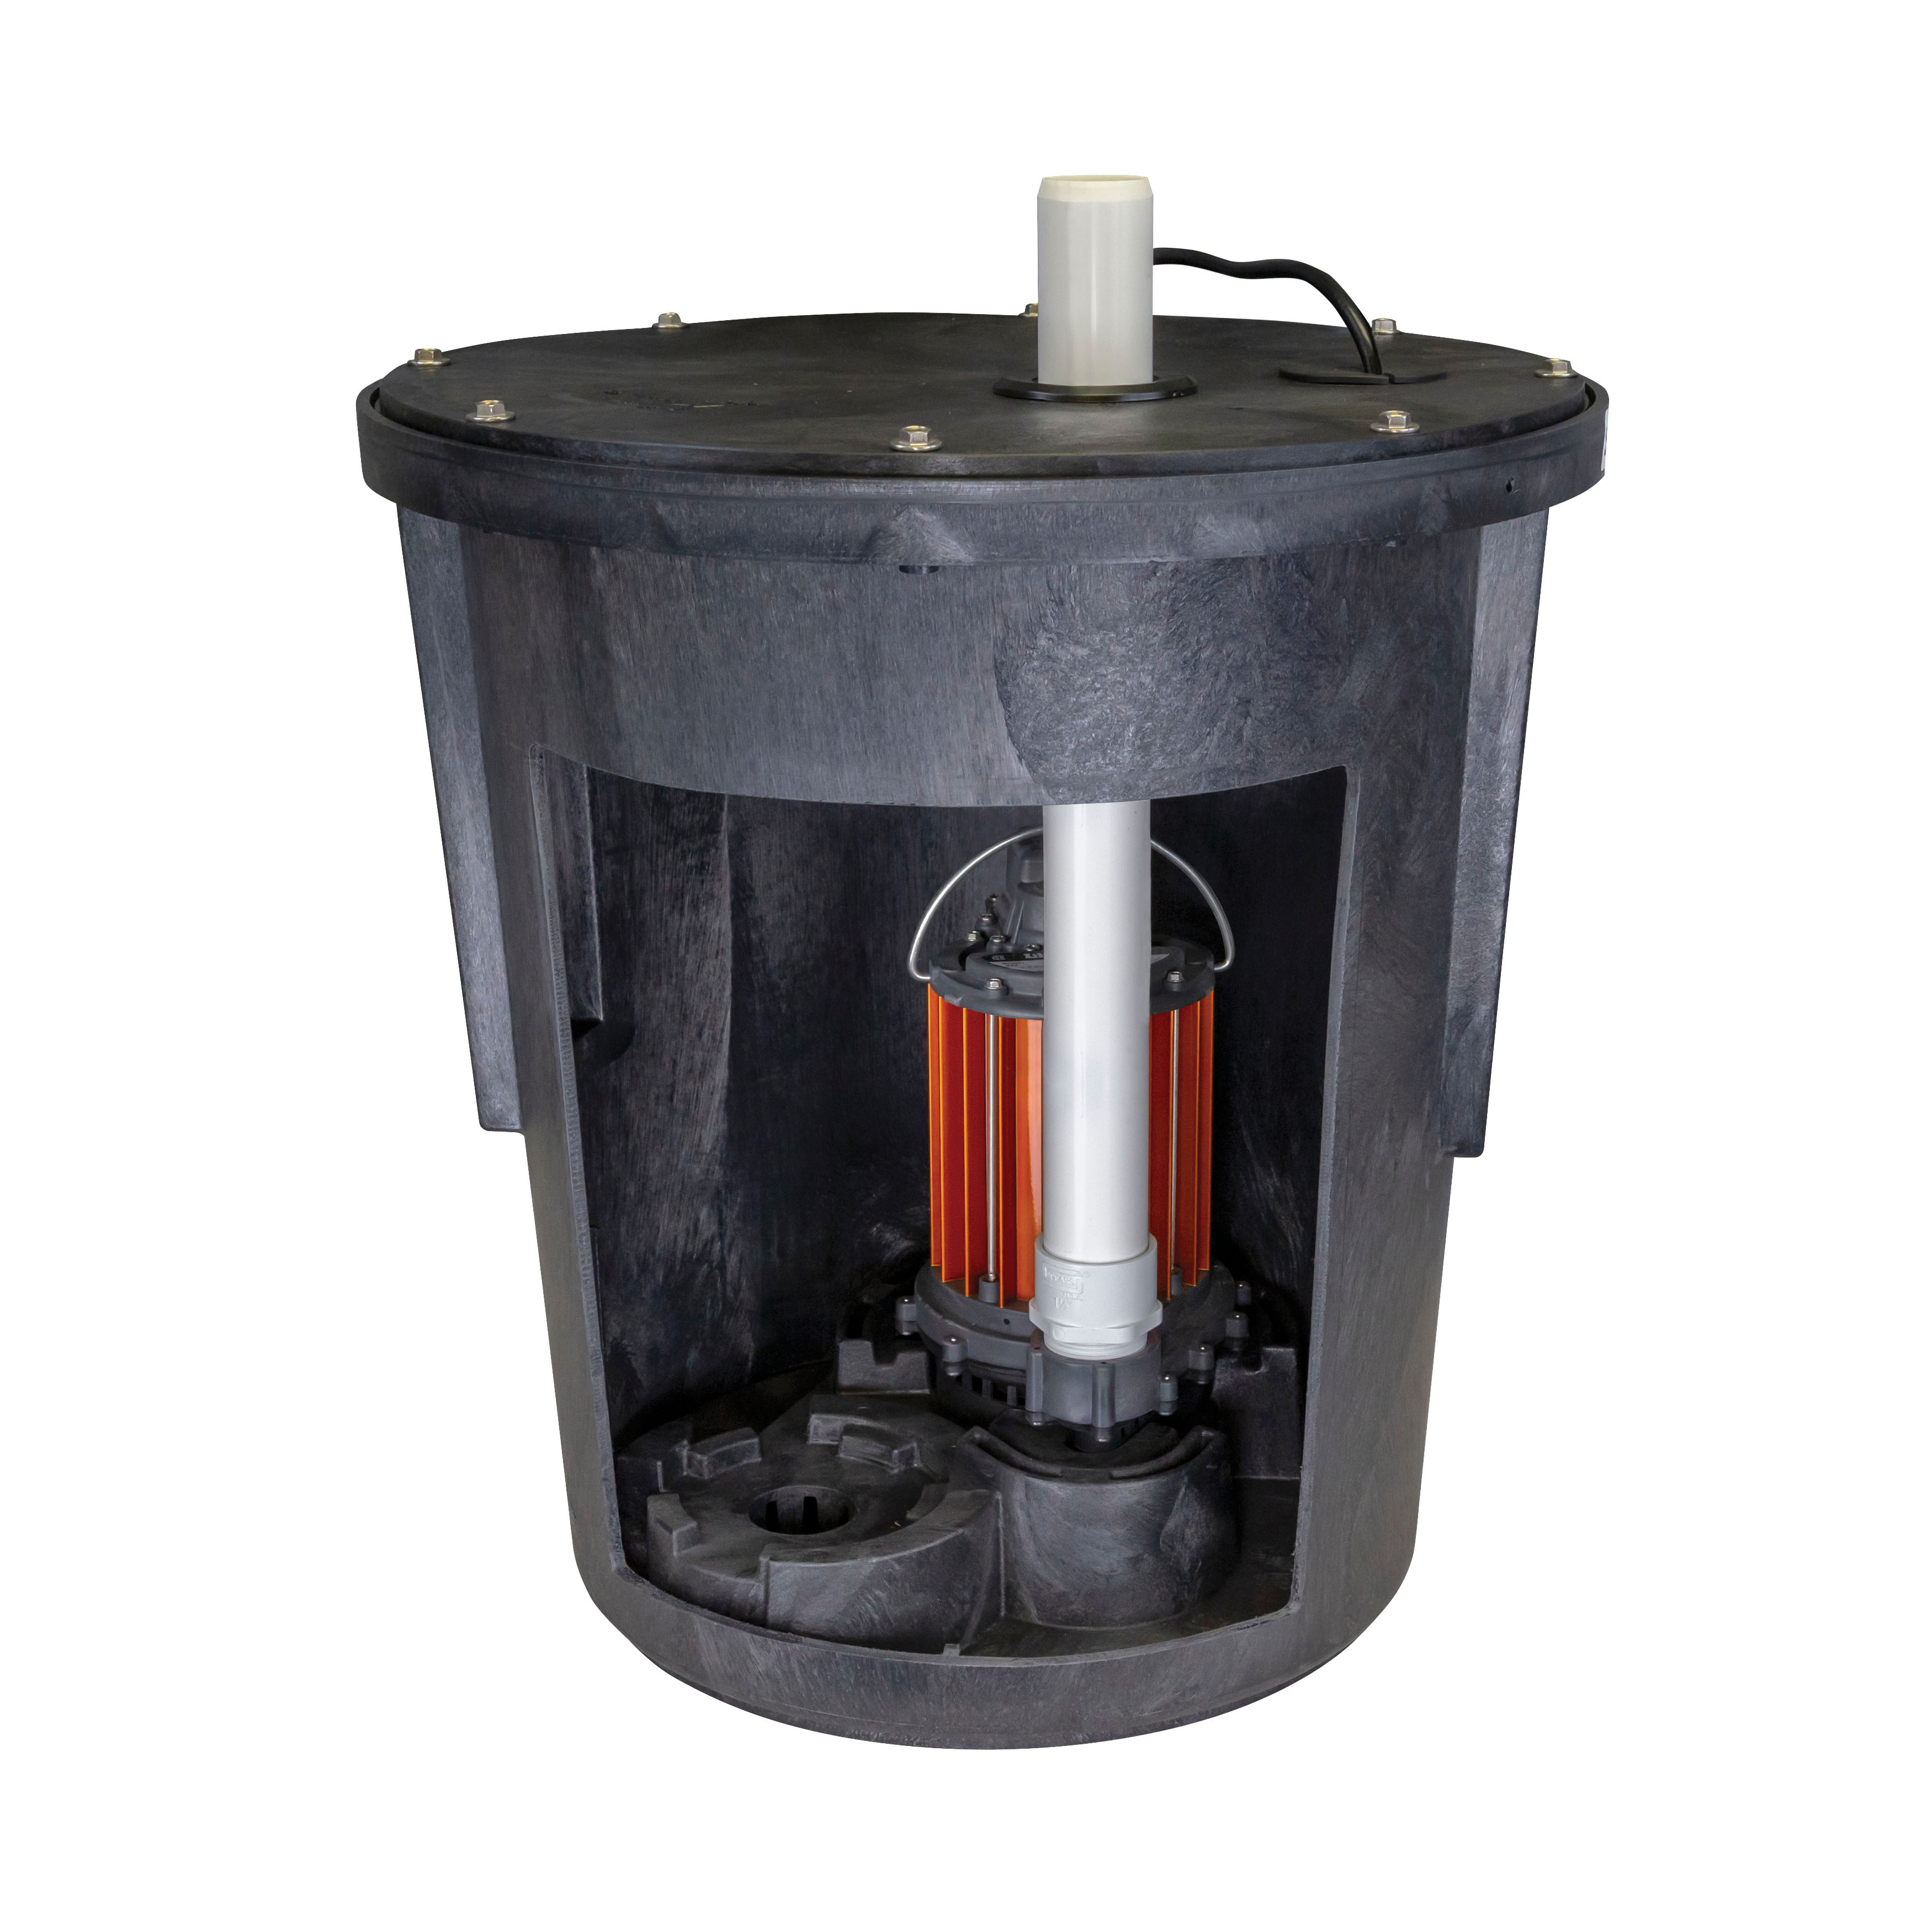 Liberty Pumps® SPAC-457 Assembled Submersible Sump Pump, 48 gpm Flow Rate, 4 in Inlet x 1-1/2 in Outlet, 1/2 hp, Polyethylene/Powder Coated Aluminum, Domestic